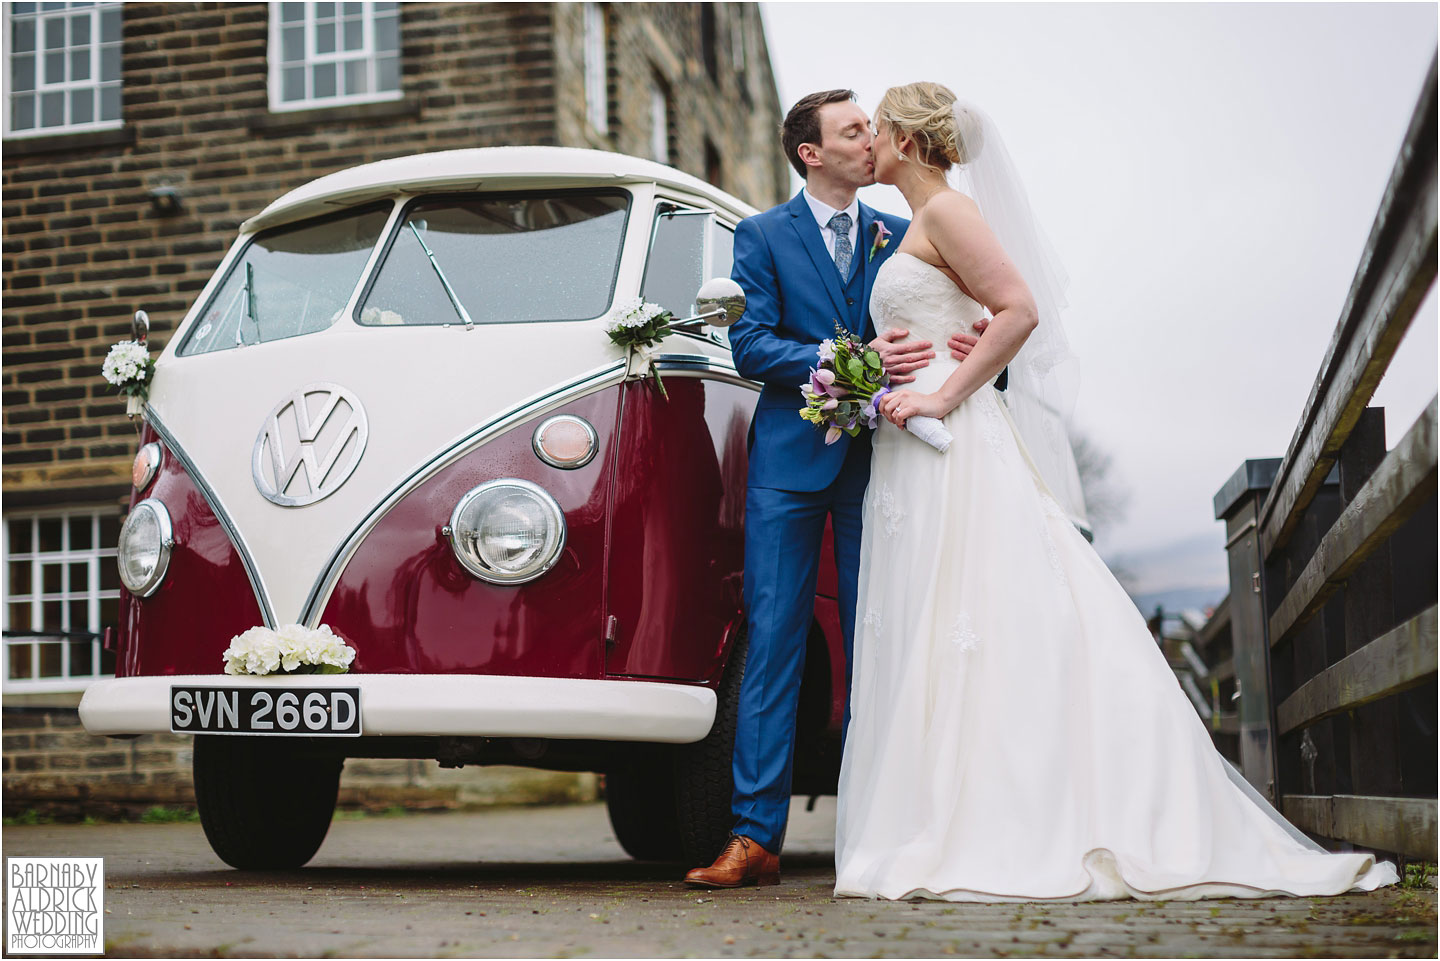 Wedding portraits with Florence the VW campervan at a wedding at Standedge Tunnel and Visitor Centre in Marsden